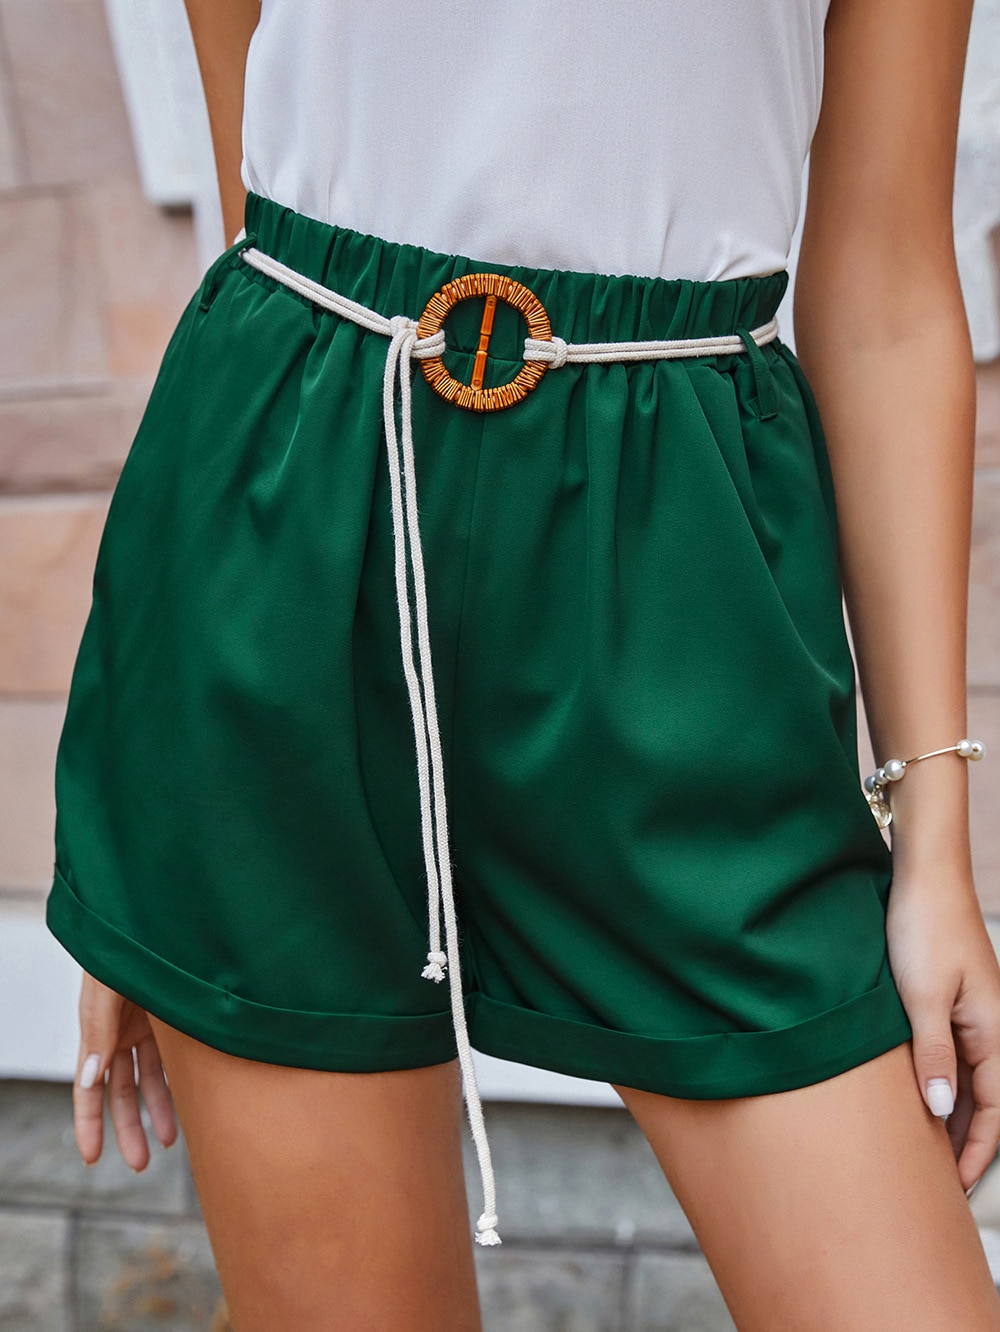 Foreign trade pants women 2021 spring and summer new green with belt mid-waist loose shorts